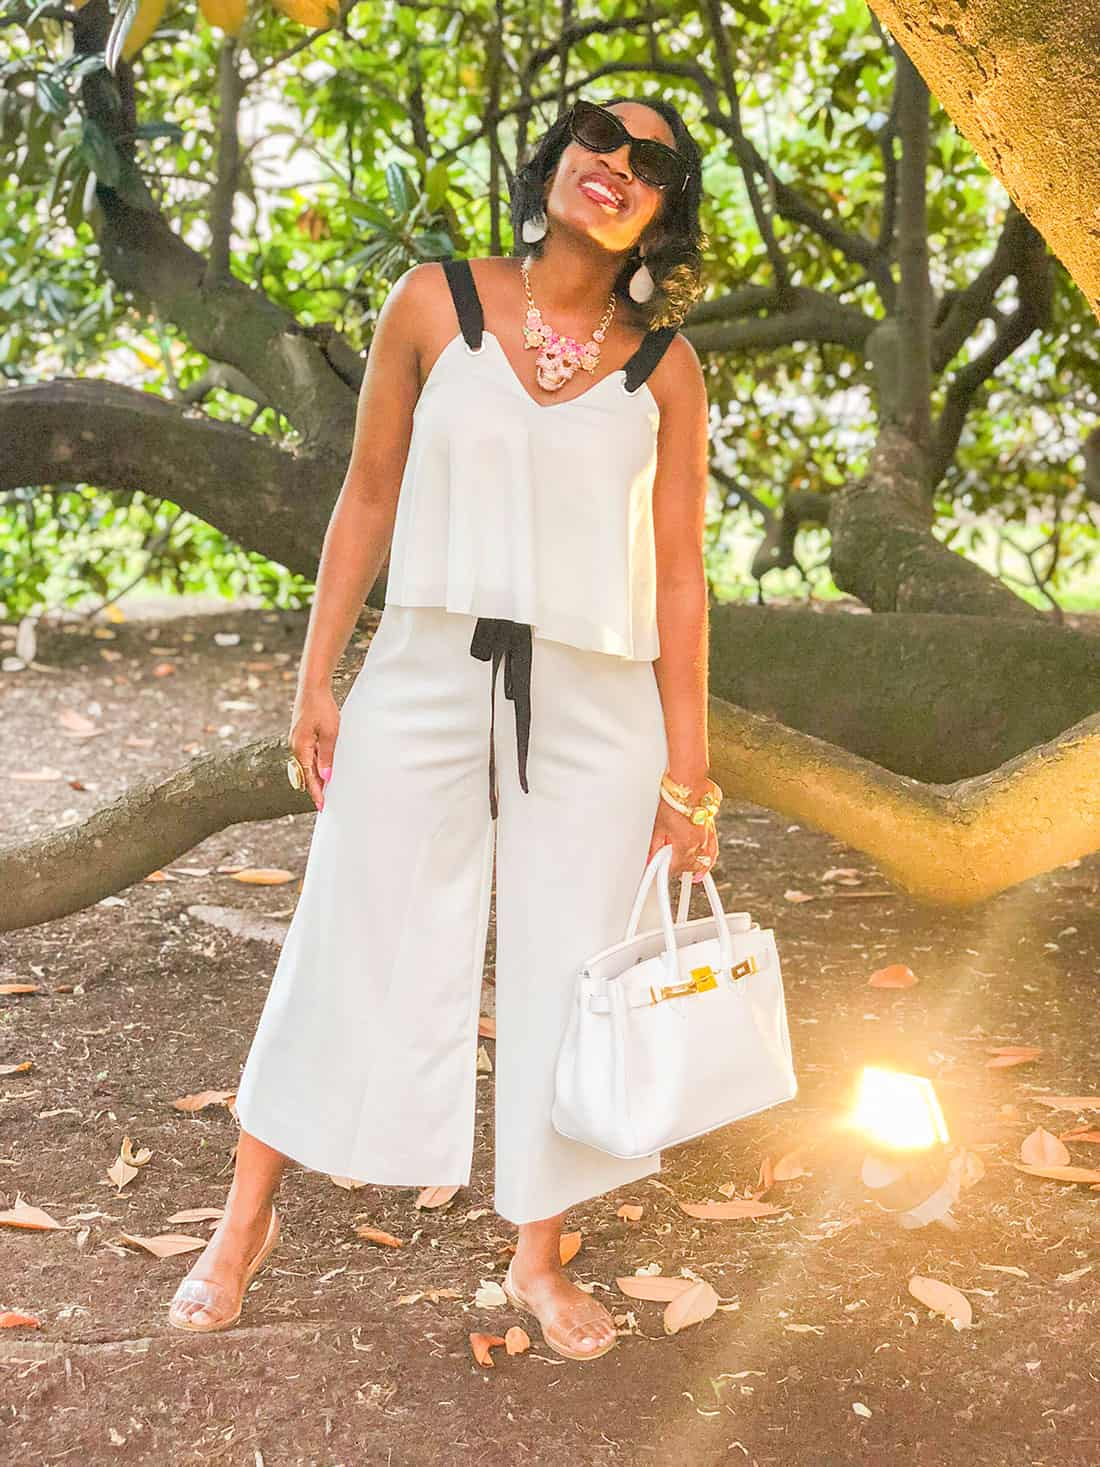 shein all white outfit under $30